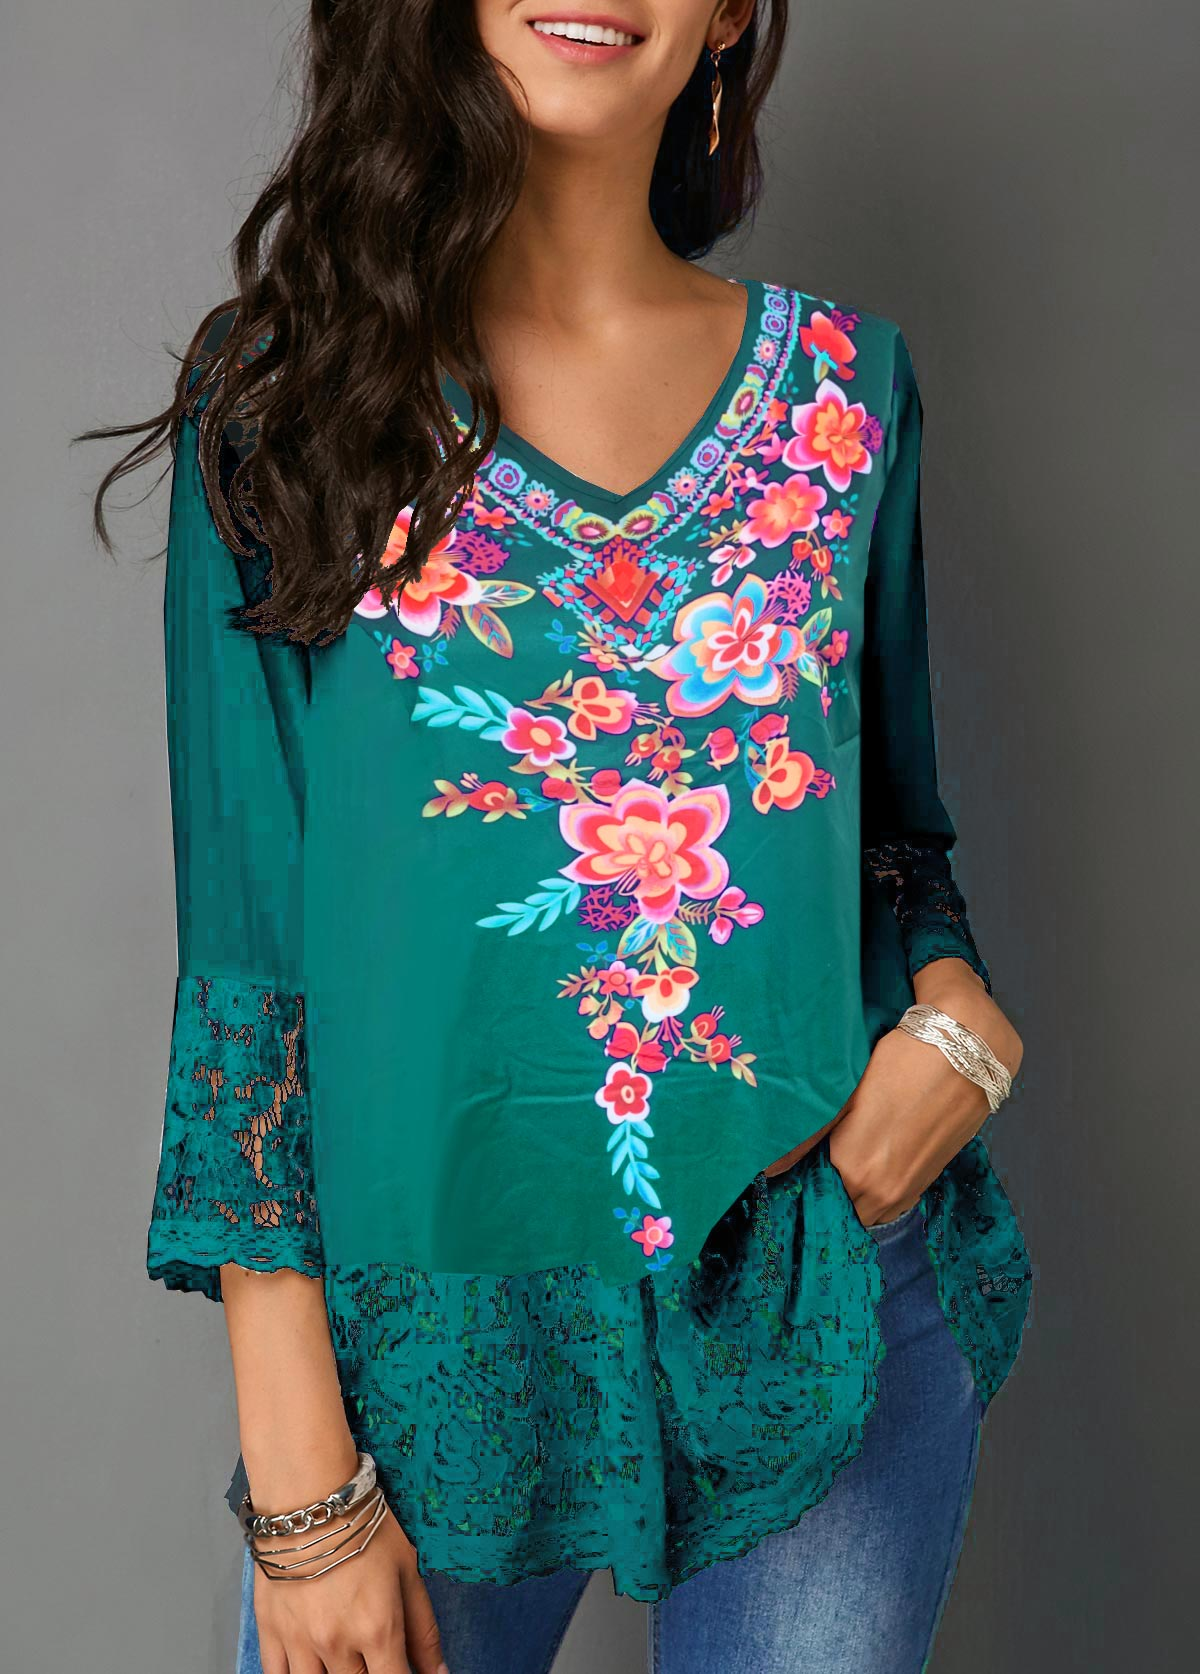 Retro Flower Print Lace Panel Peacock Blue Blouse